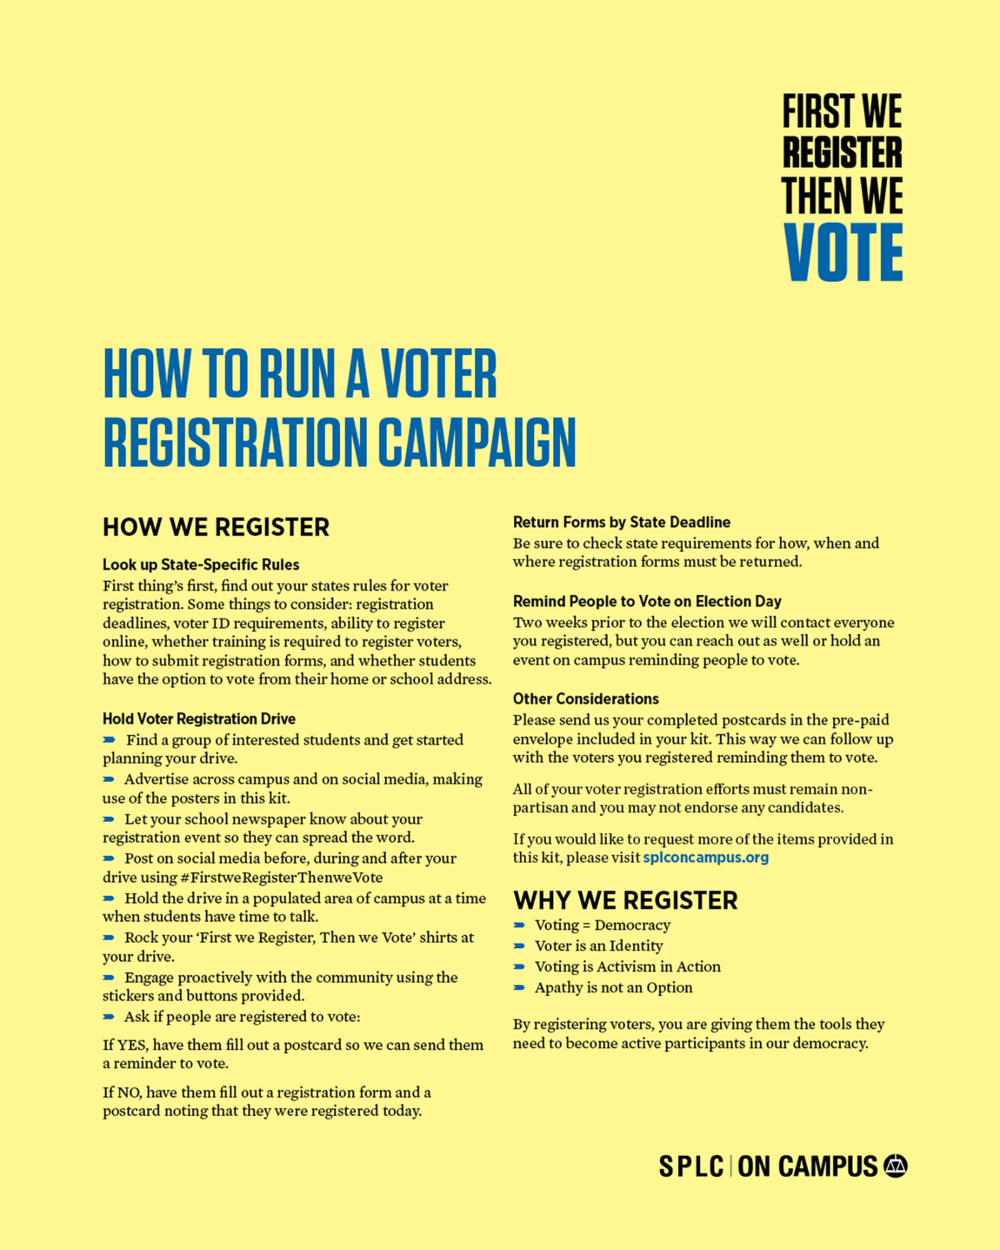 How-to-Run-a-Voter-Registration-Campaign-and-Use-Our-Kit.png